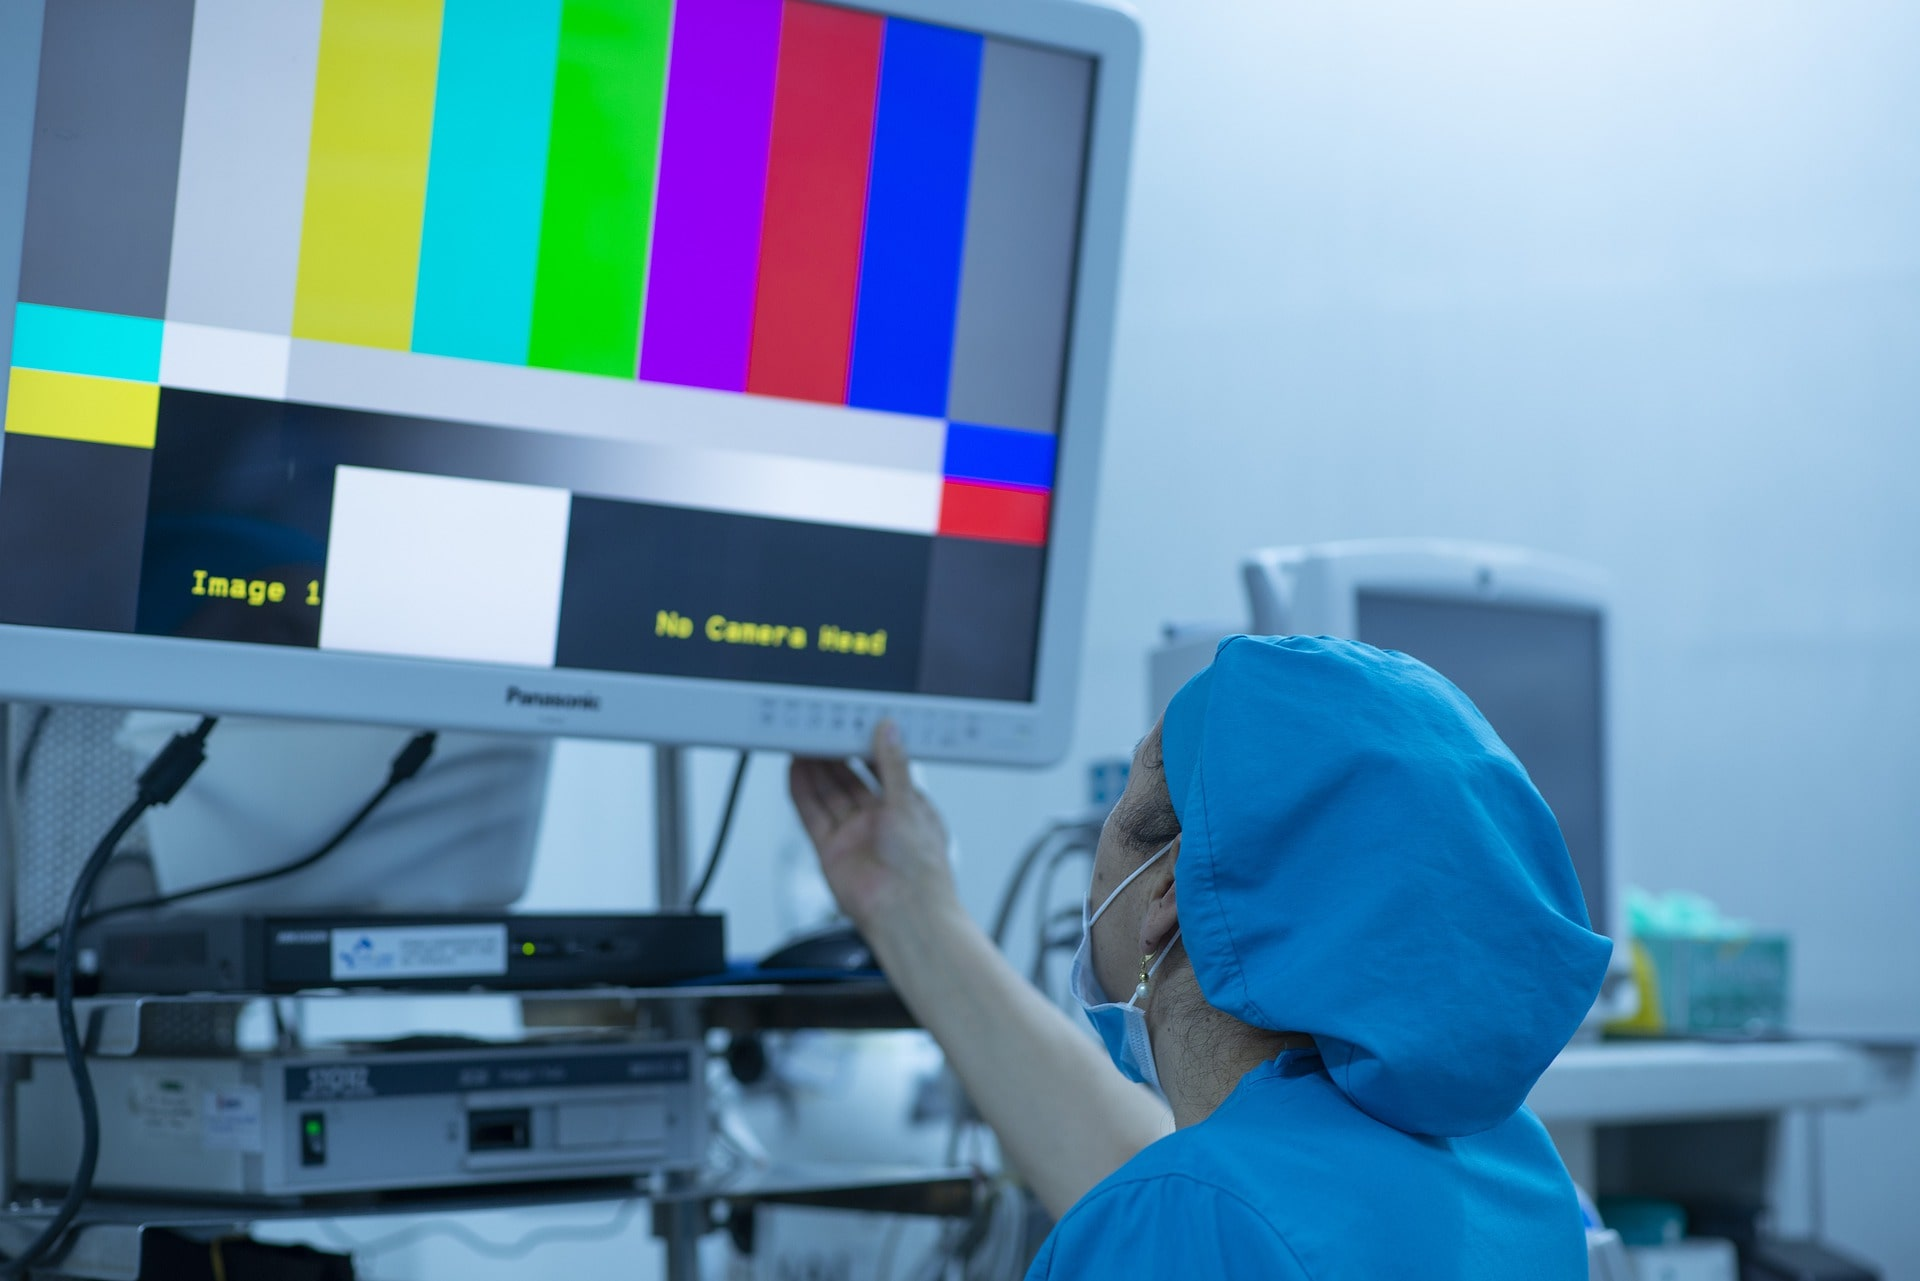 components-of-a-patient-monitoring-system-software-computer-screen